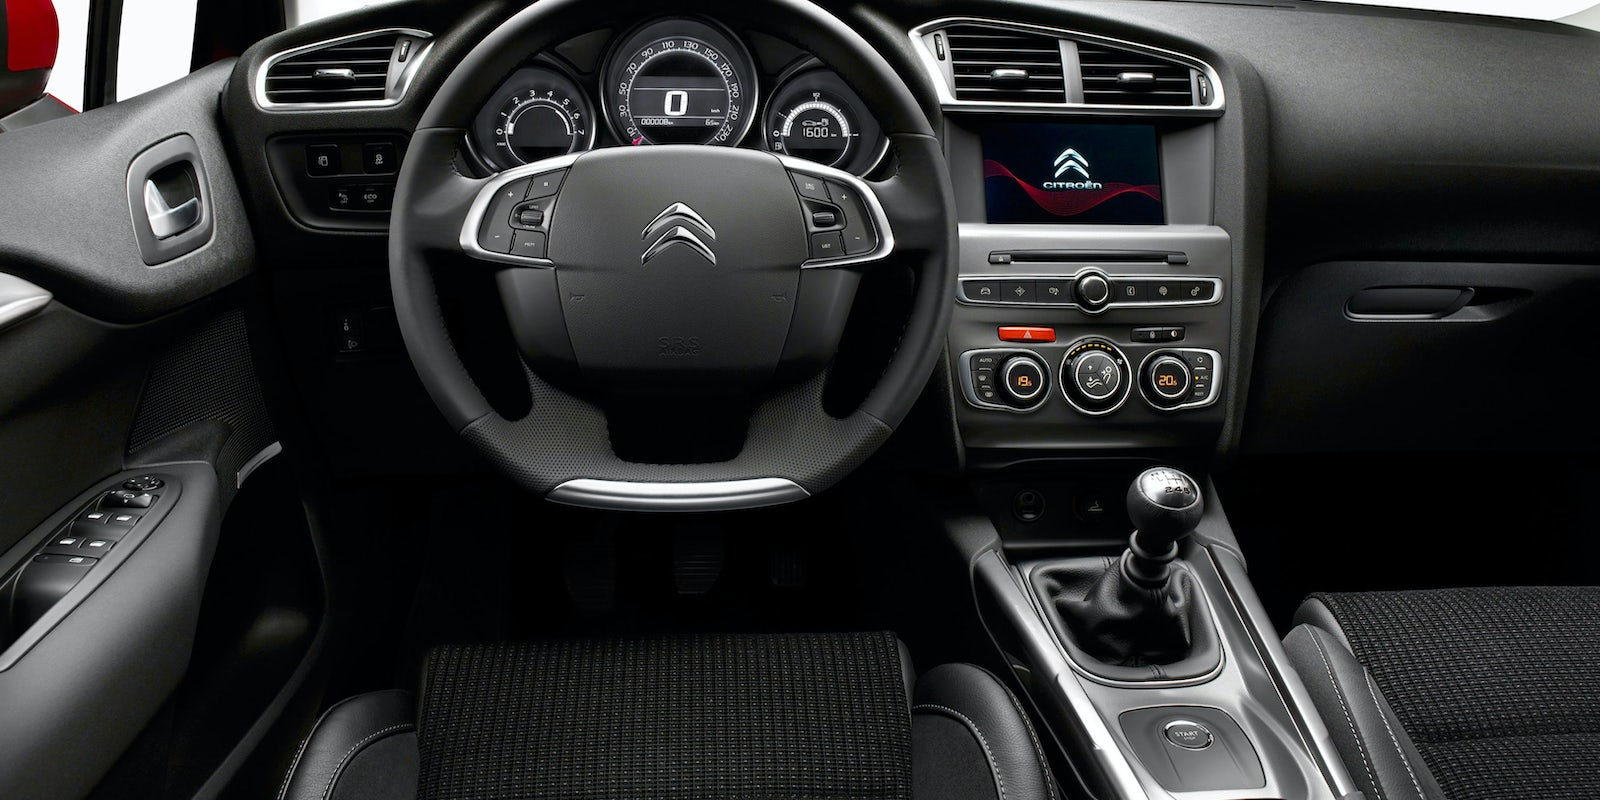 citroen c4 interior and infotainment carwow. Black Bedroom Furniture Sets. Home Design Ideas